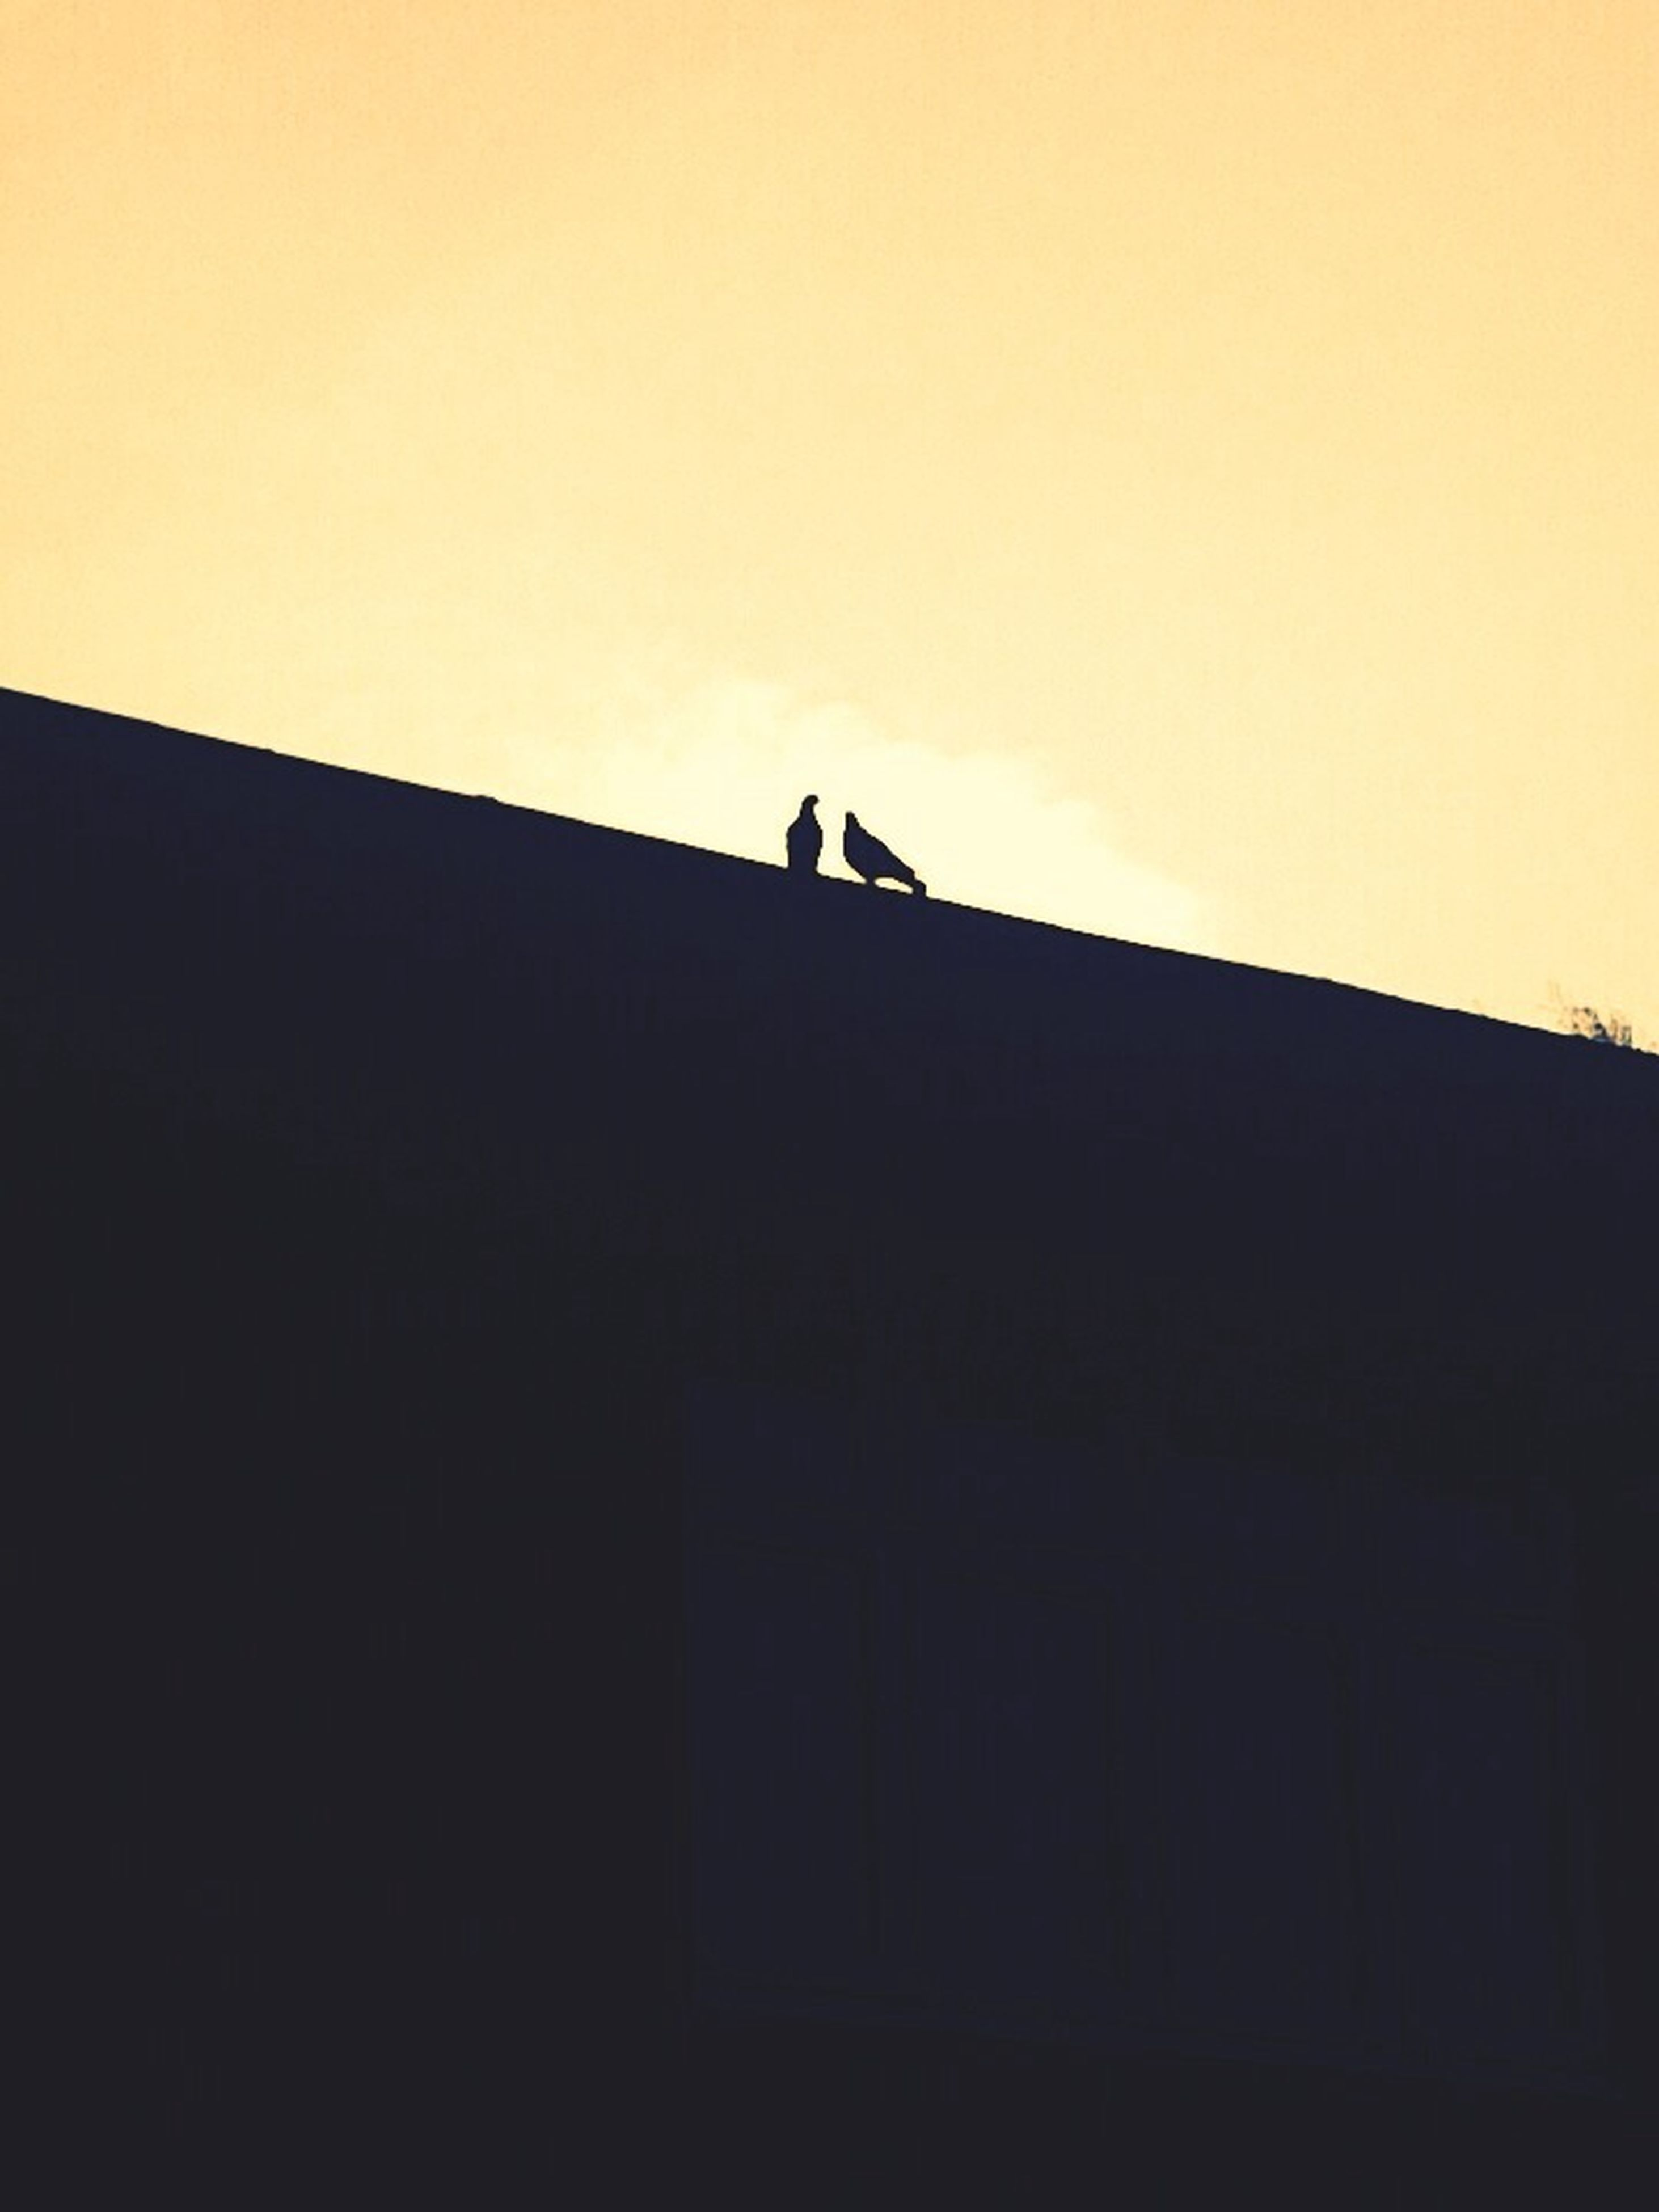 silhouette, architecture, built structure, building exterior, low angle view, copy space, sky, clear sky, building, sunset, men, outline, outdoors, unrecognizable person, dusk, dark, high section, wall - building feature